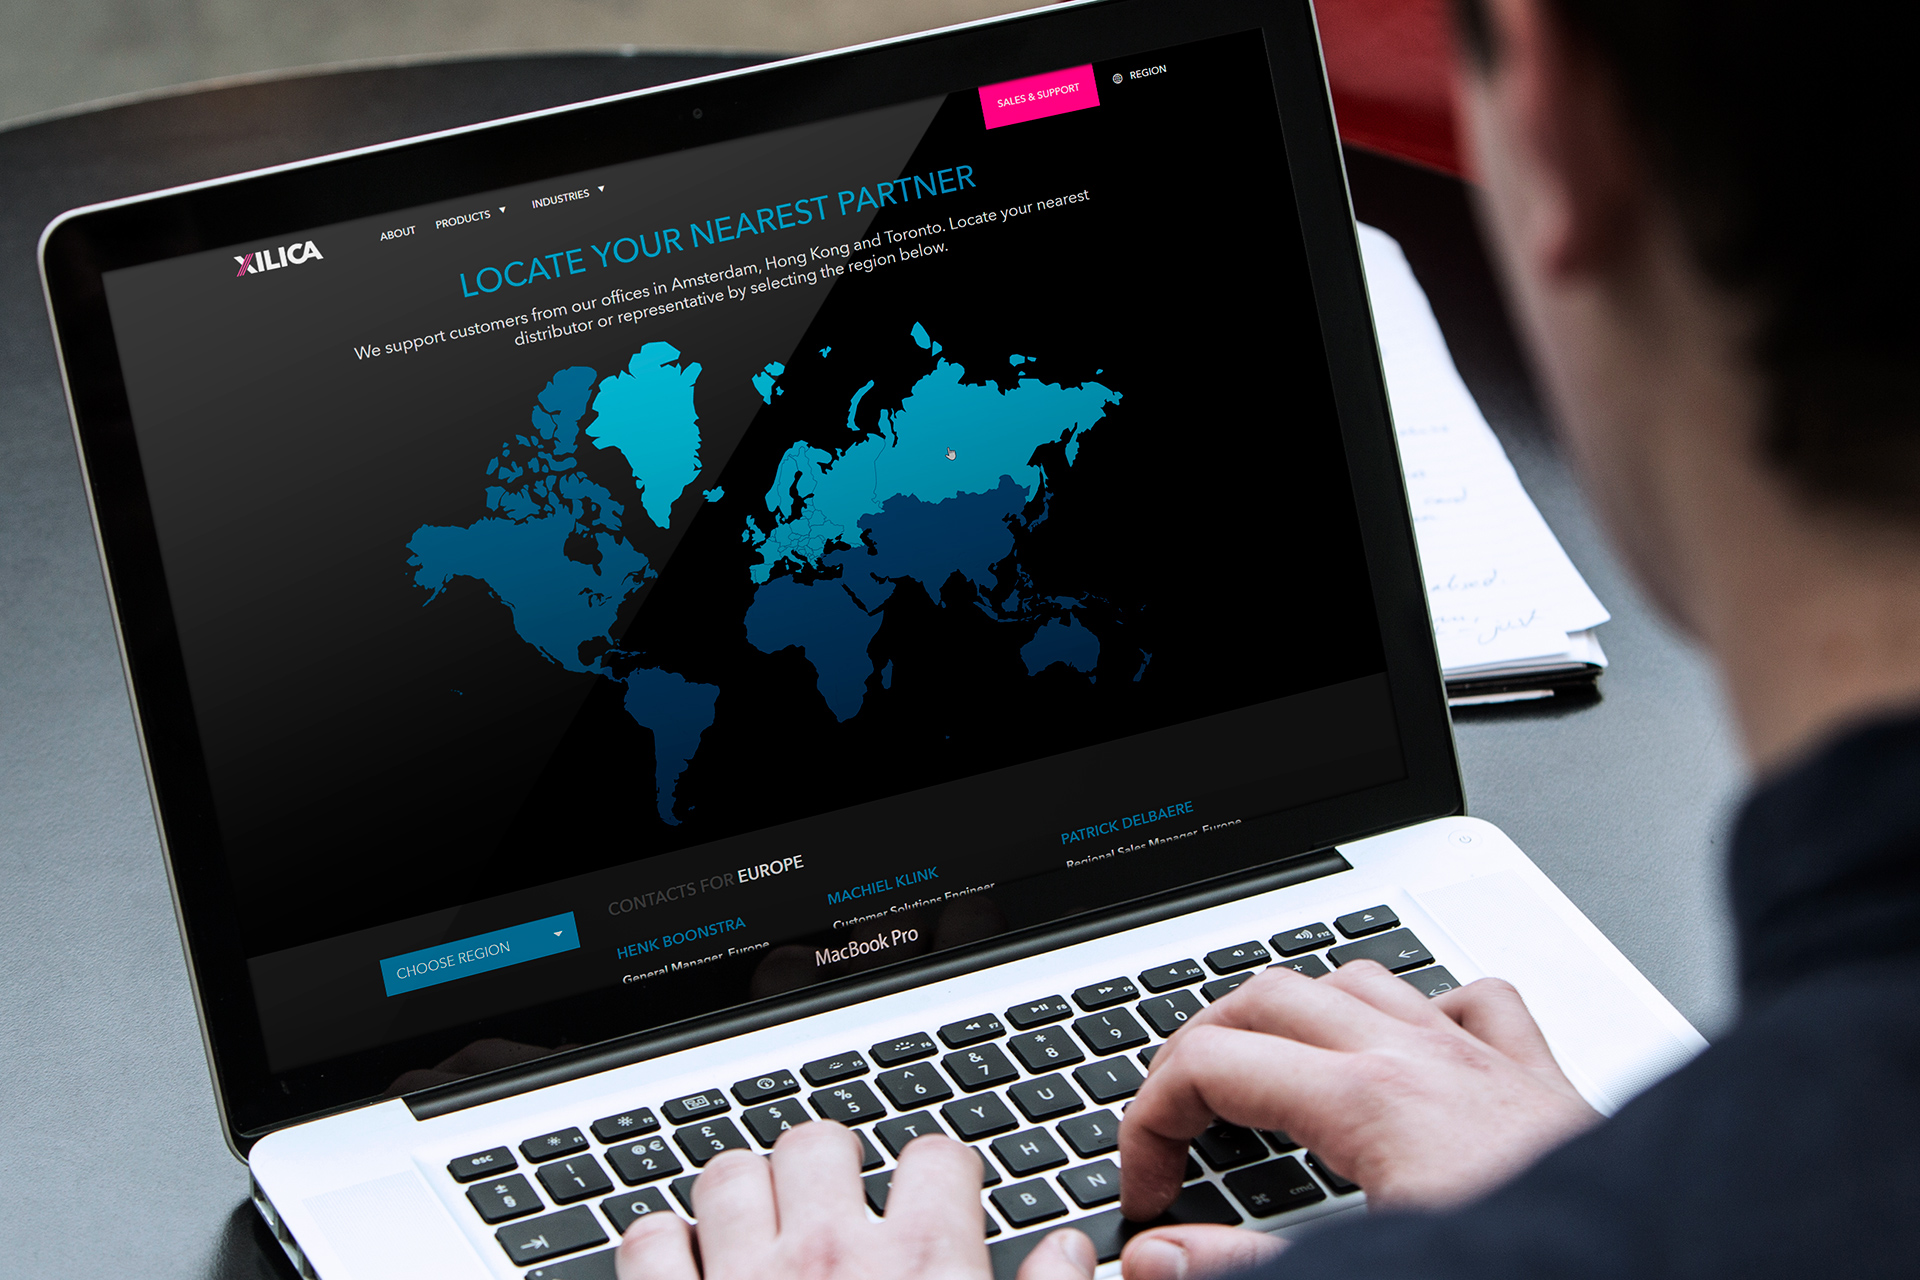 The website operates as a sales vehicle across six global regions.